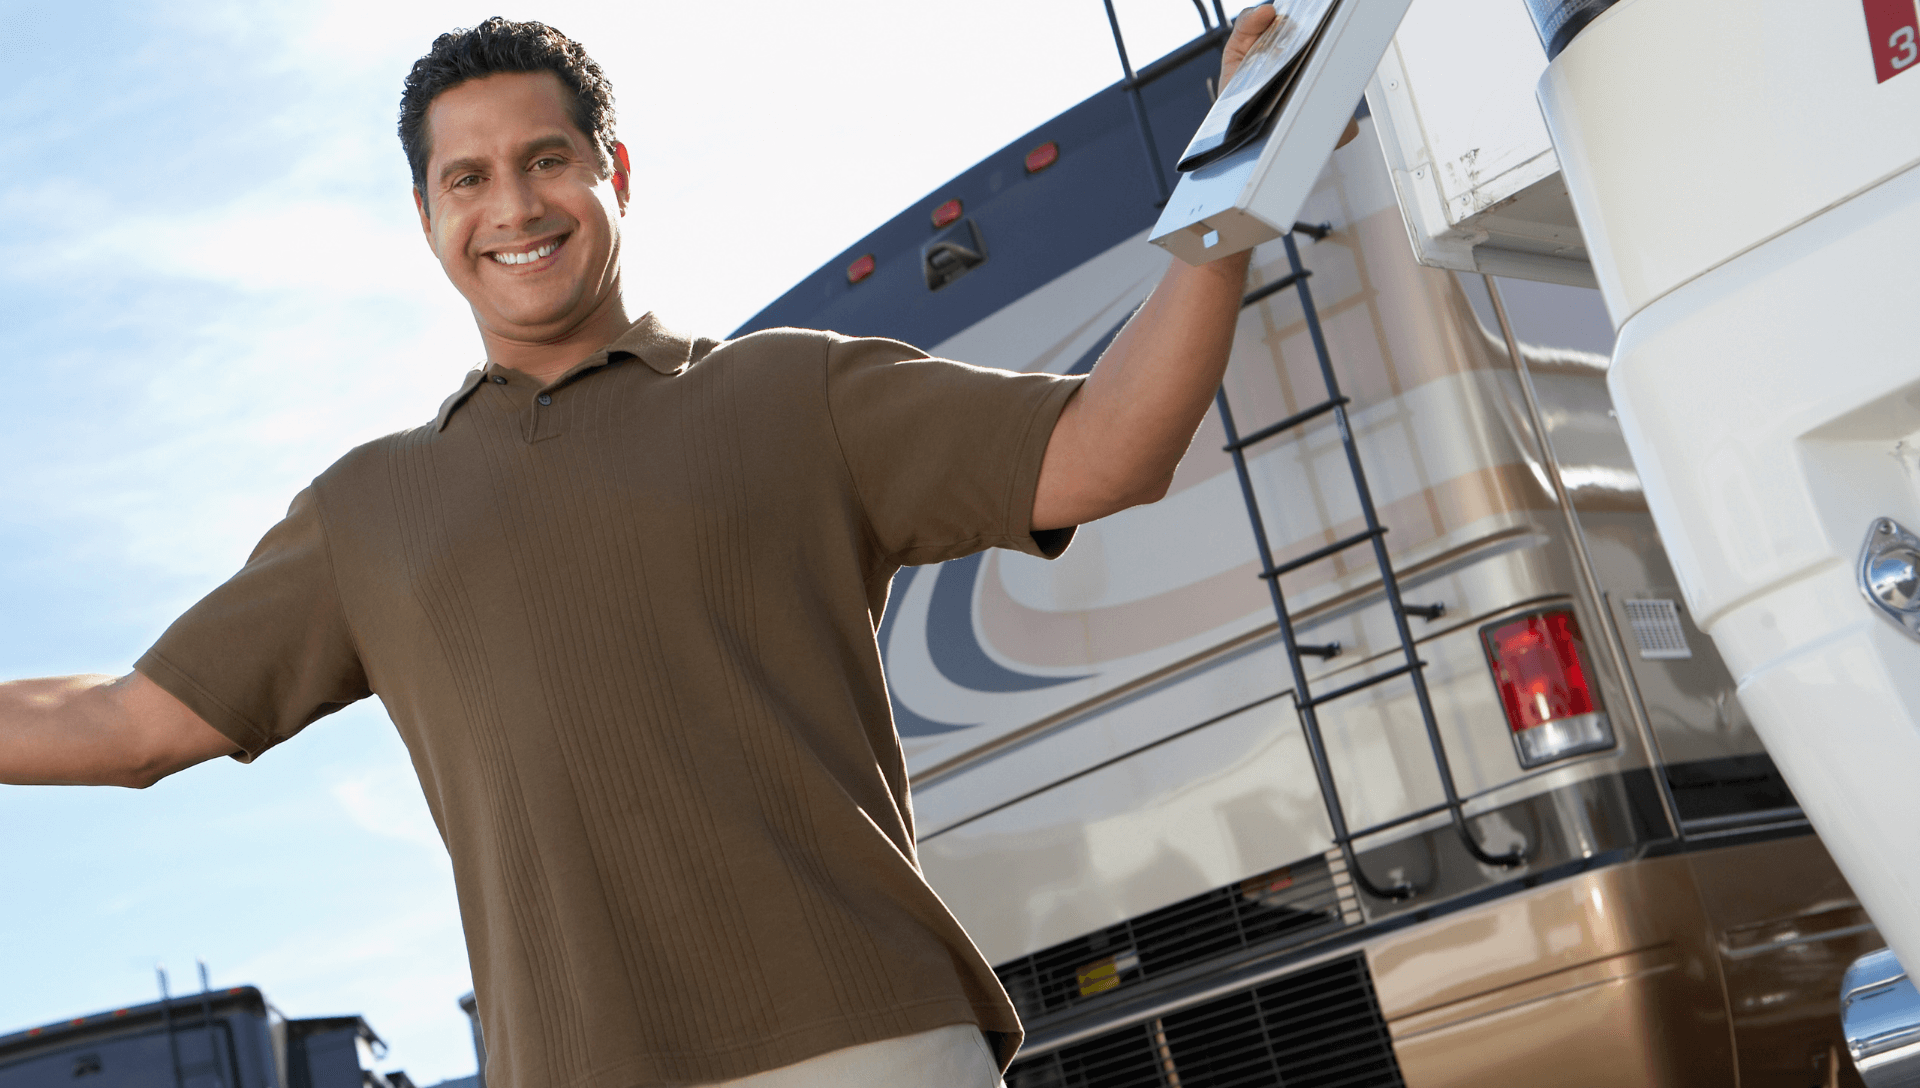 A man stands on an RV lot with a smile and his hands up declaring he found the best RV. He is standing behind a Class A motorhome.